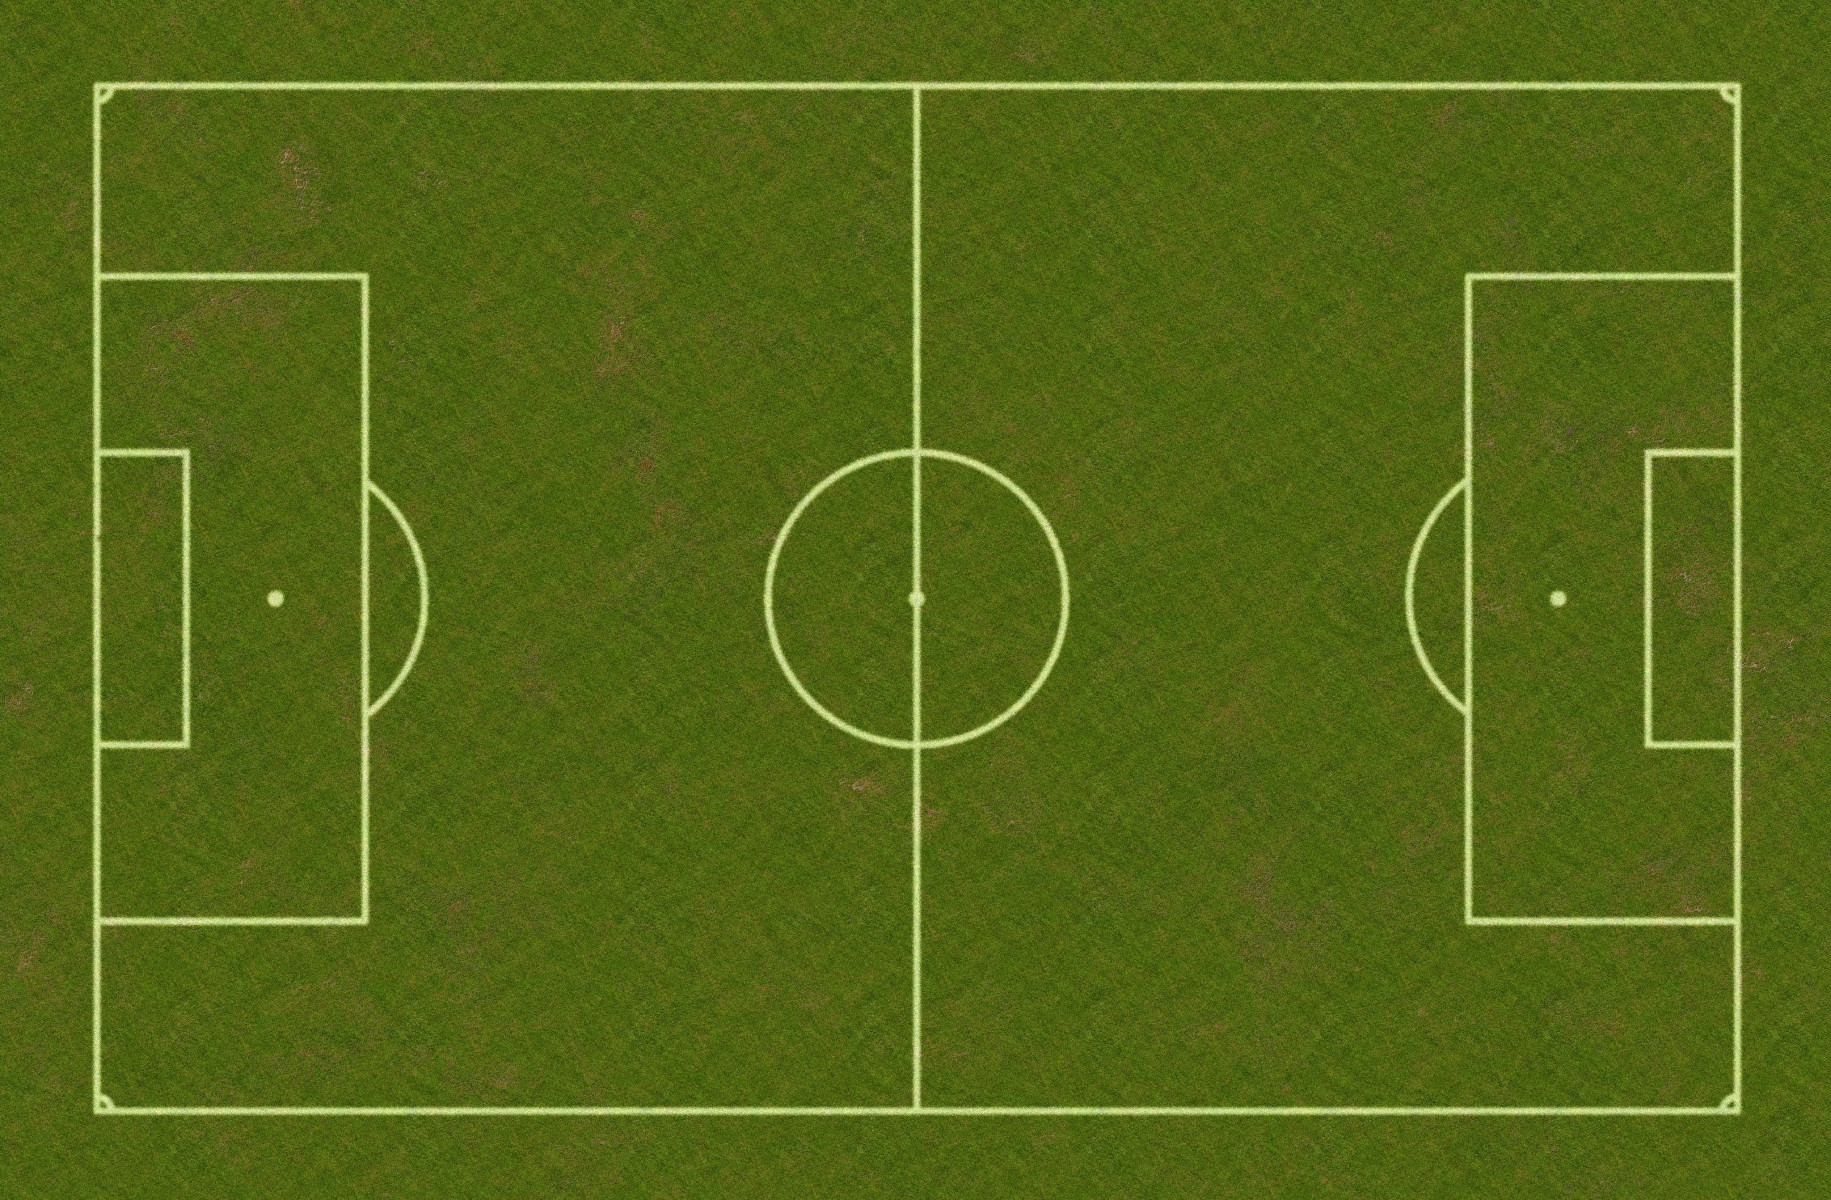 Soccer Field 03 Free Texture Download By 3dxo Com